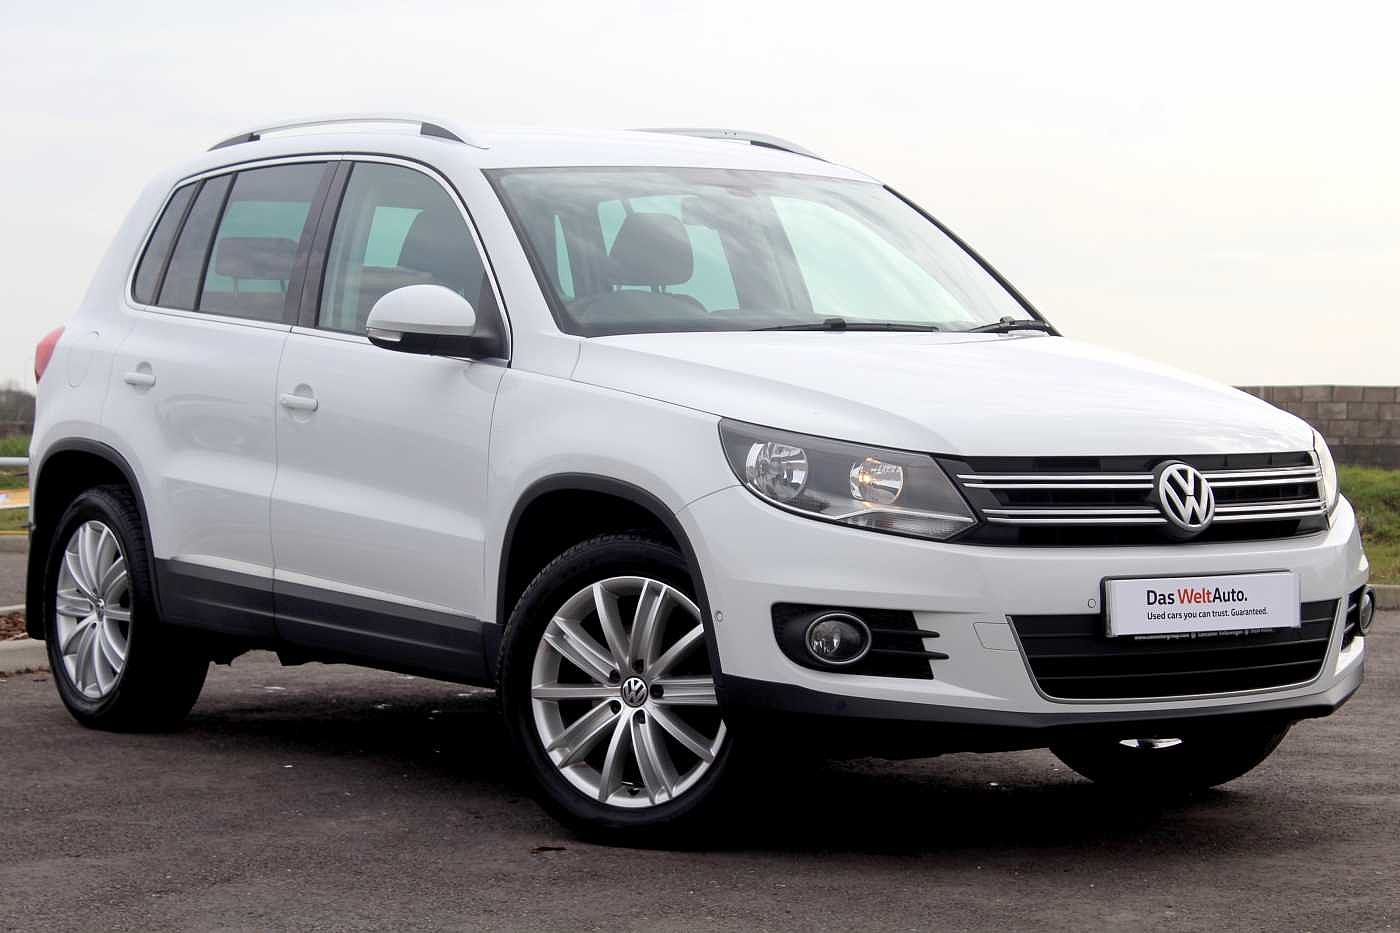 Volkswagen Tiguan 2.0 TDI 150PS Match 4Motion SCR